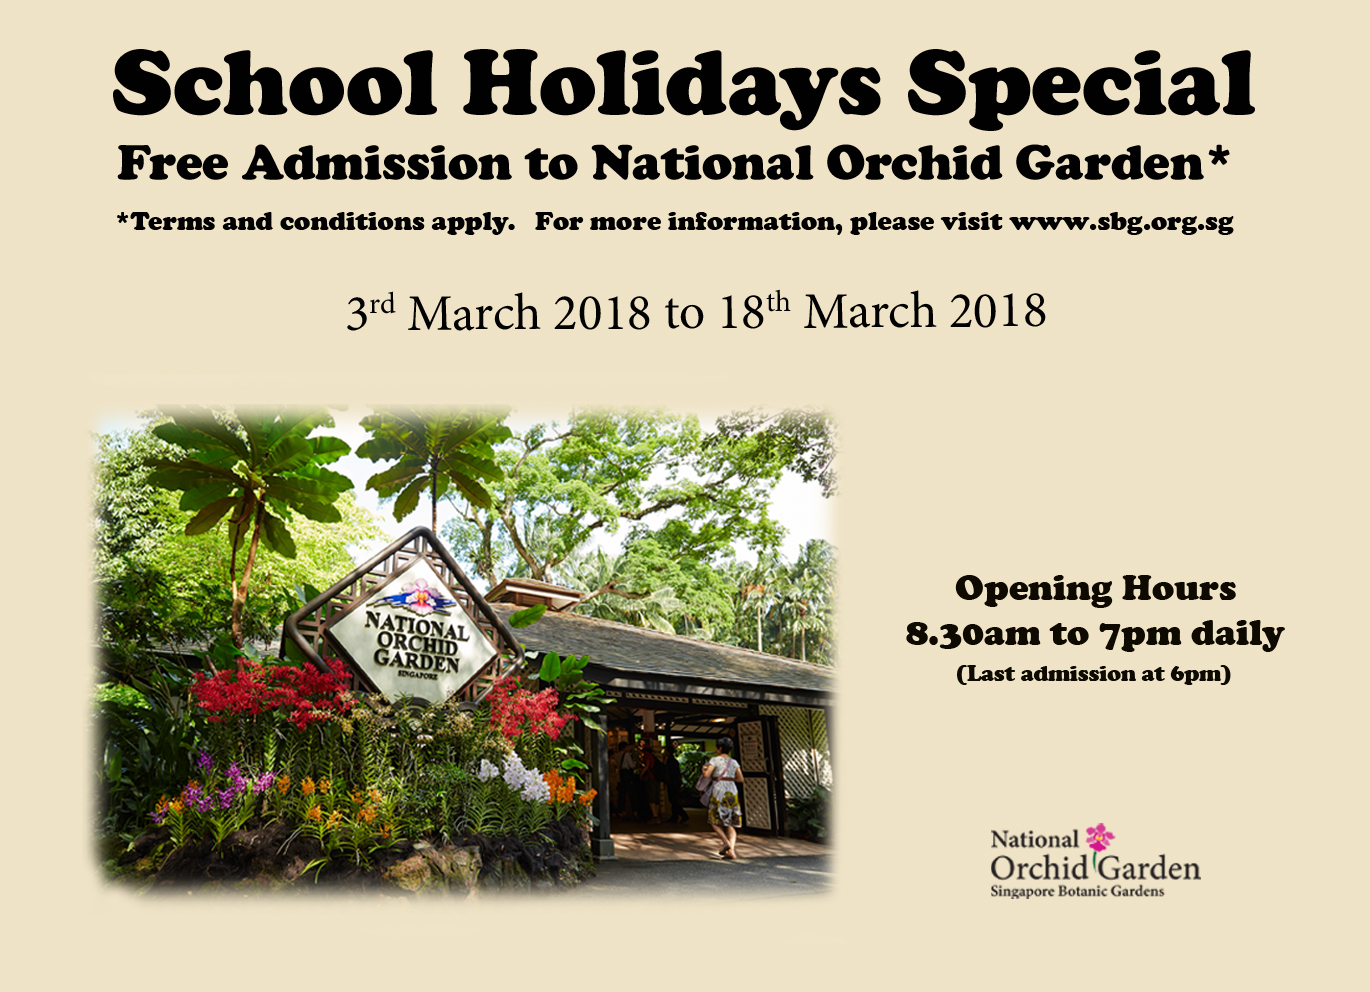 Poster for free admission to national orchid garden for students, PR and work permit holders